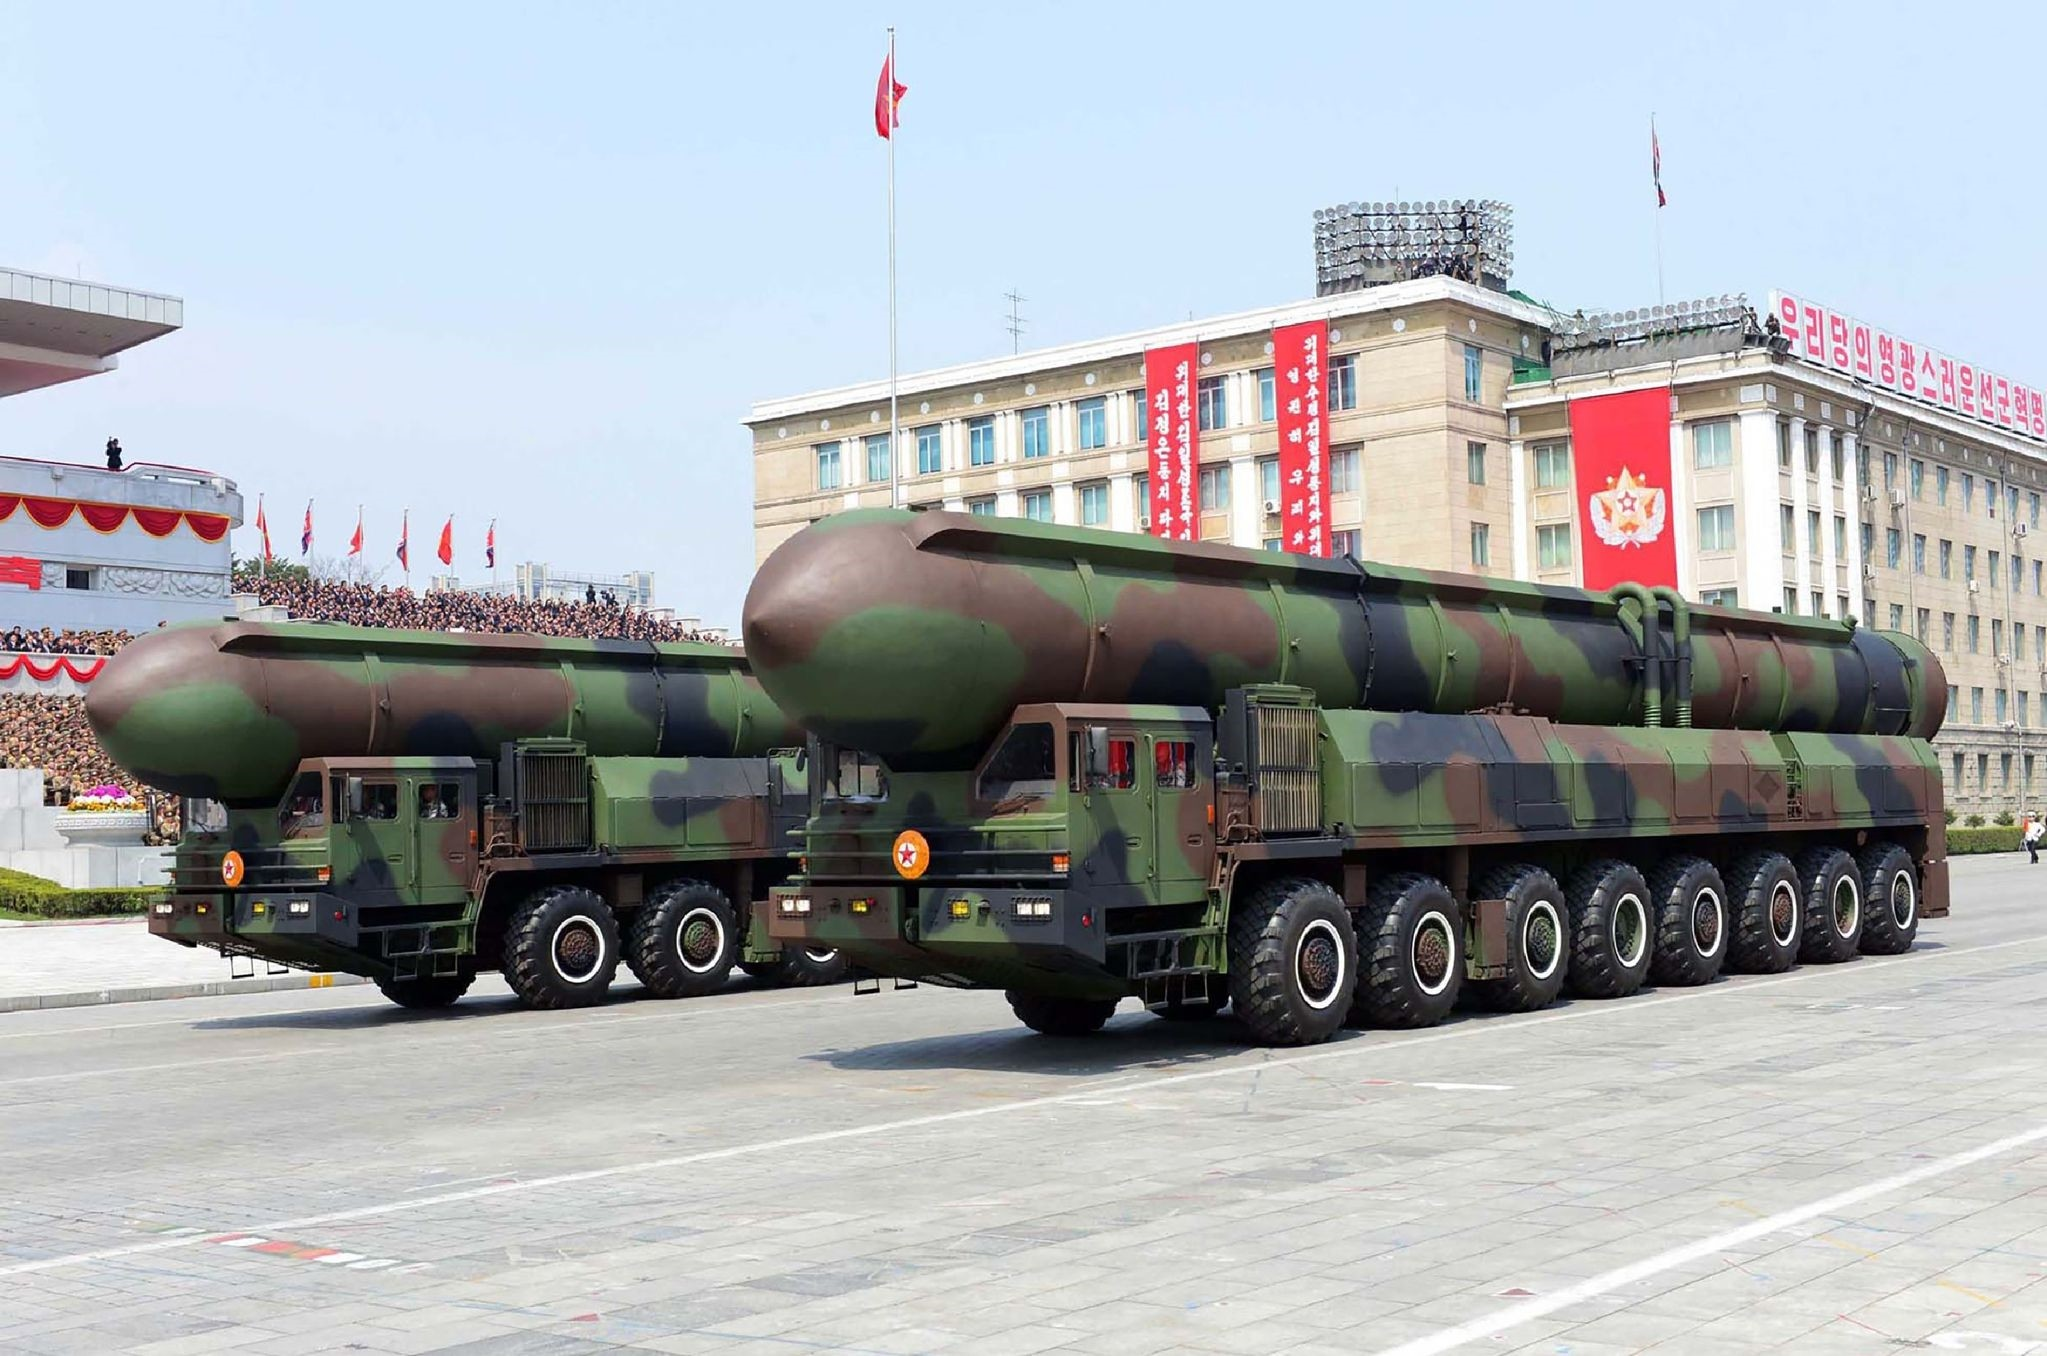 This April 15, 2017 picture released from North Korea's official Korean Central News Agency on April 16, 2017 shows Korean People's ballistic missiles being displayed through Kim Il-Sung square during a military parade in Pyongyang. (AFP Photo)